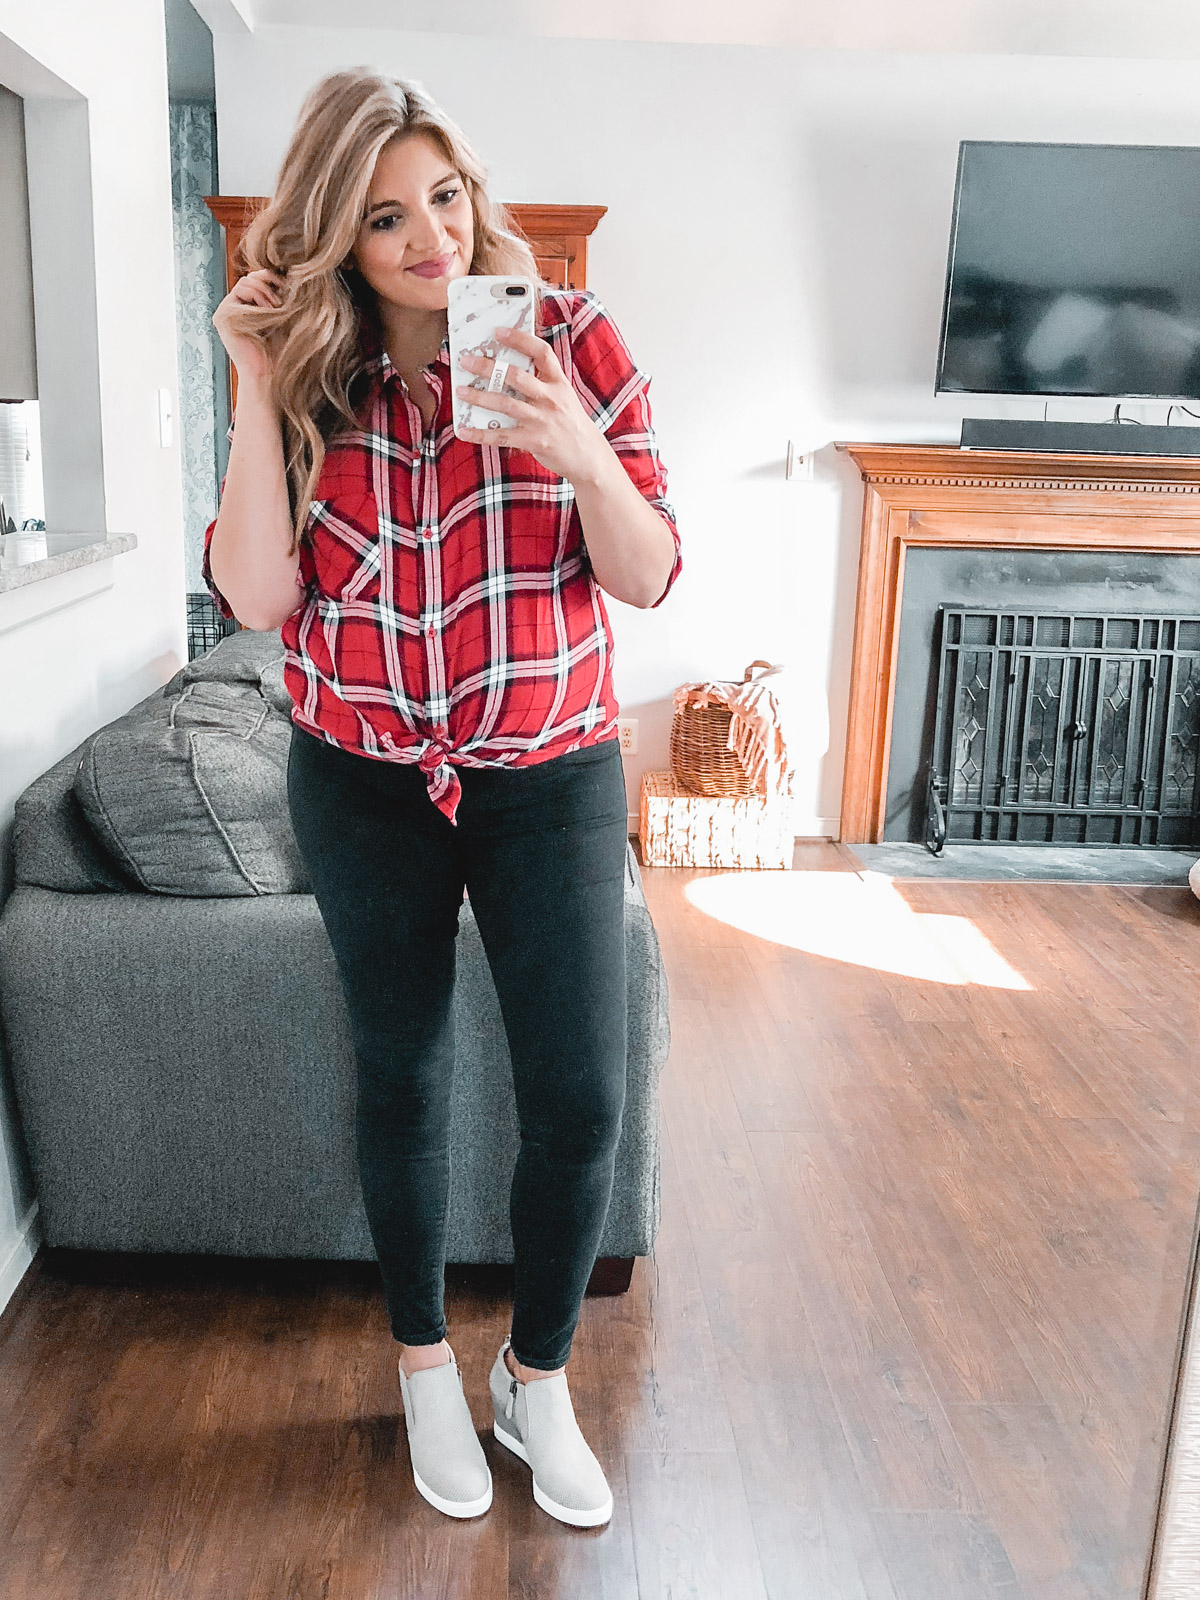 knotted plaid top with jeans - Need plaid top outfit ideas? I'm sharing one $31 plaid top styled 15 different ways on bylaurenm.com!